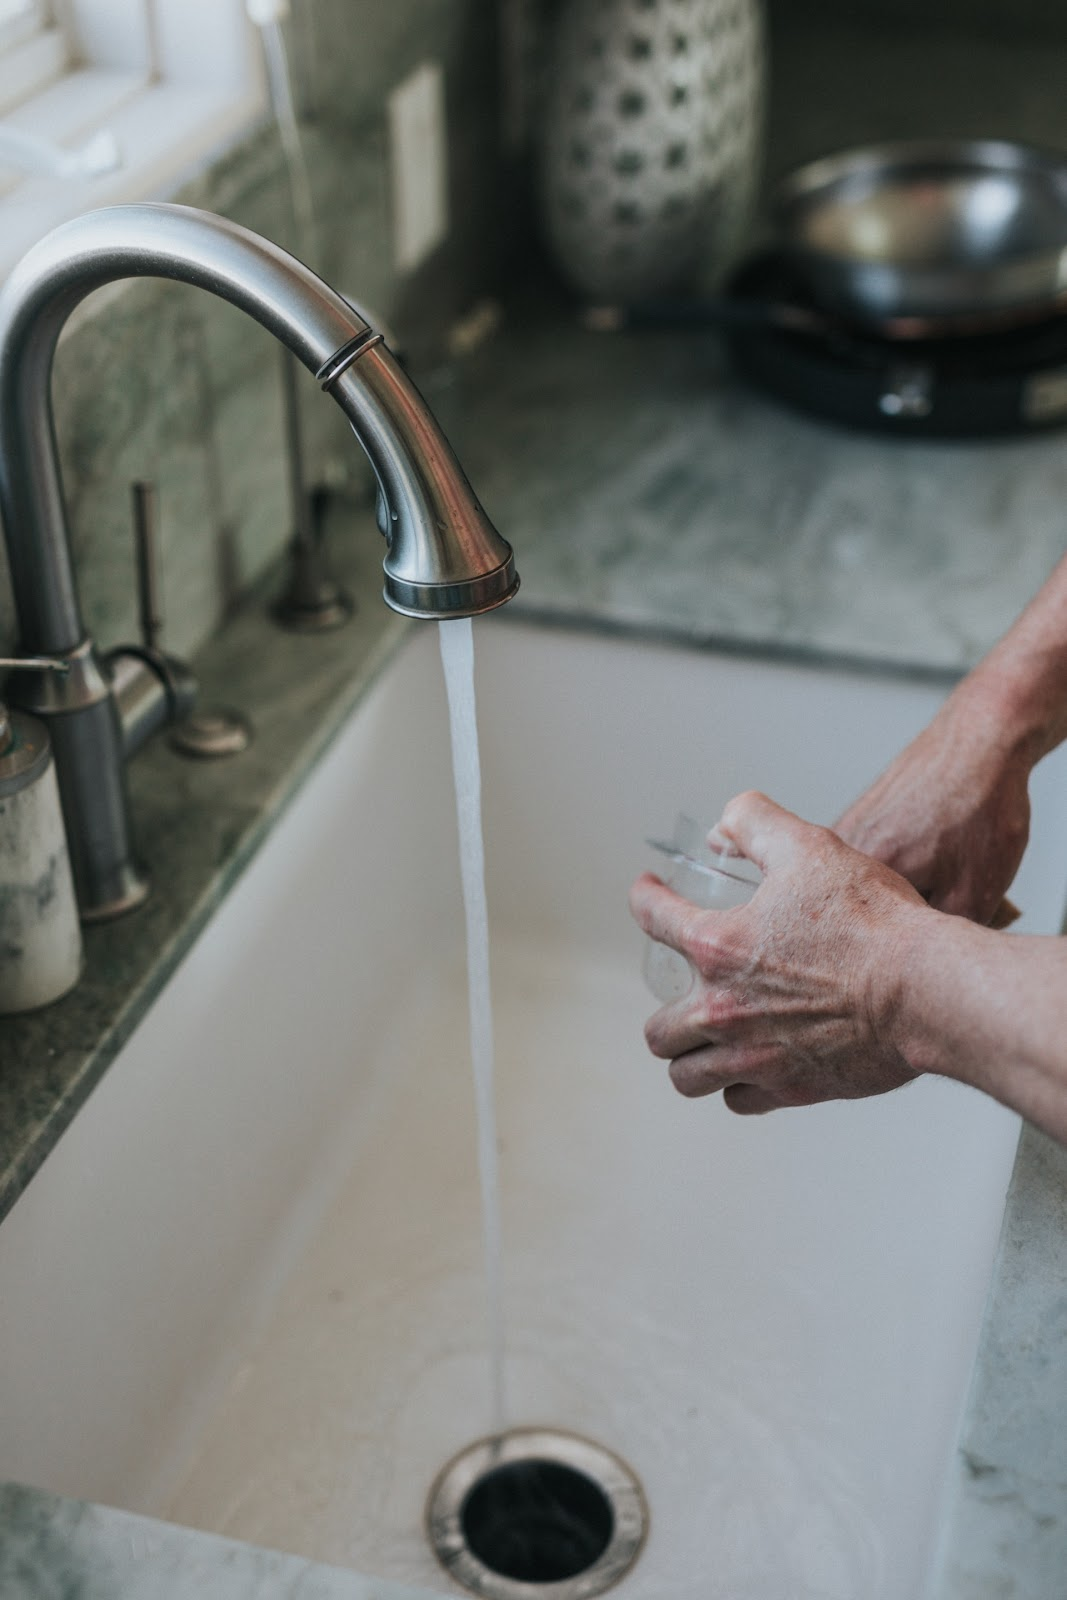 A person cleaning a bowl; doing chores can boost your health